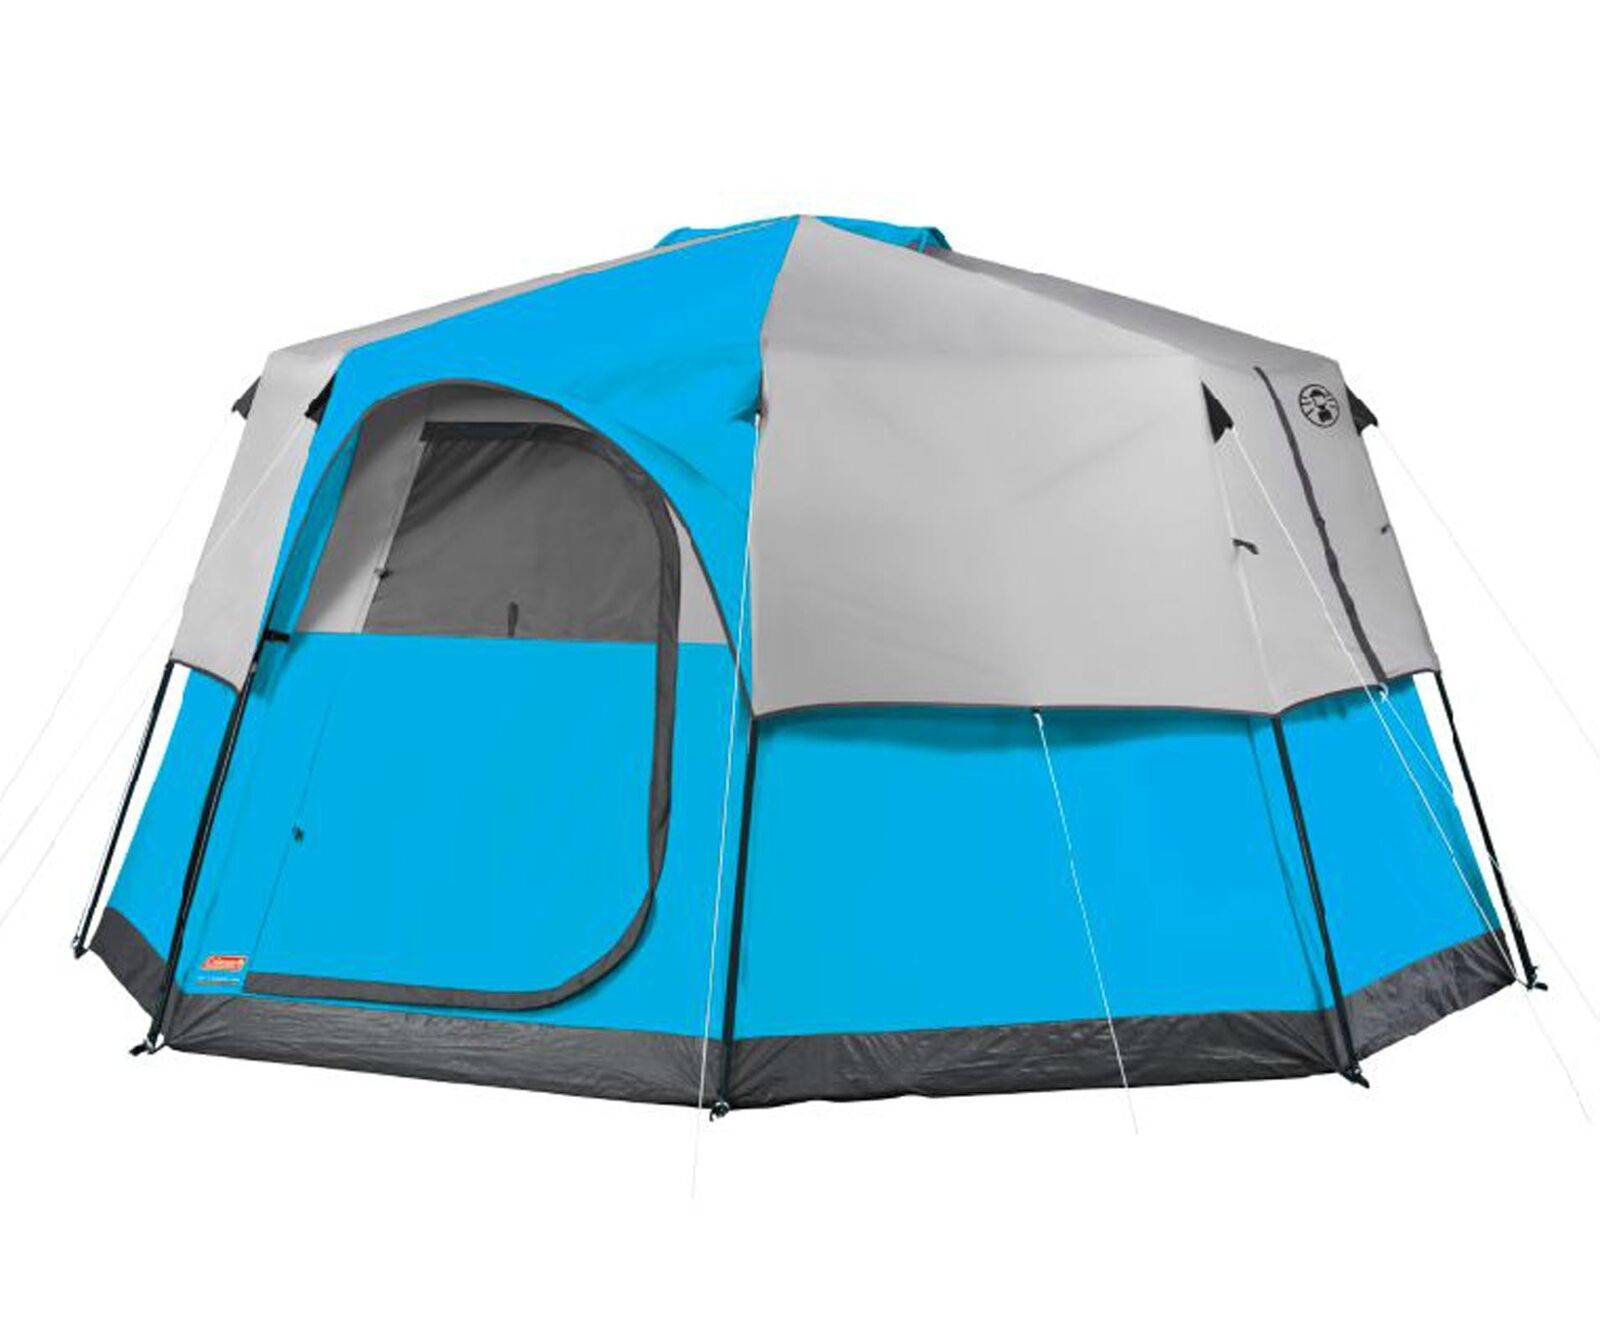 Coleman 8 Person 2 Room Octagon 98 Family Camping Tent w/ RainFly | 13' x 13'